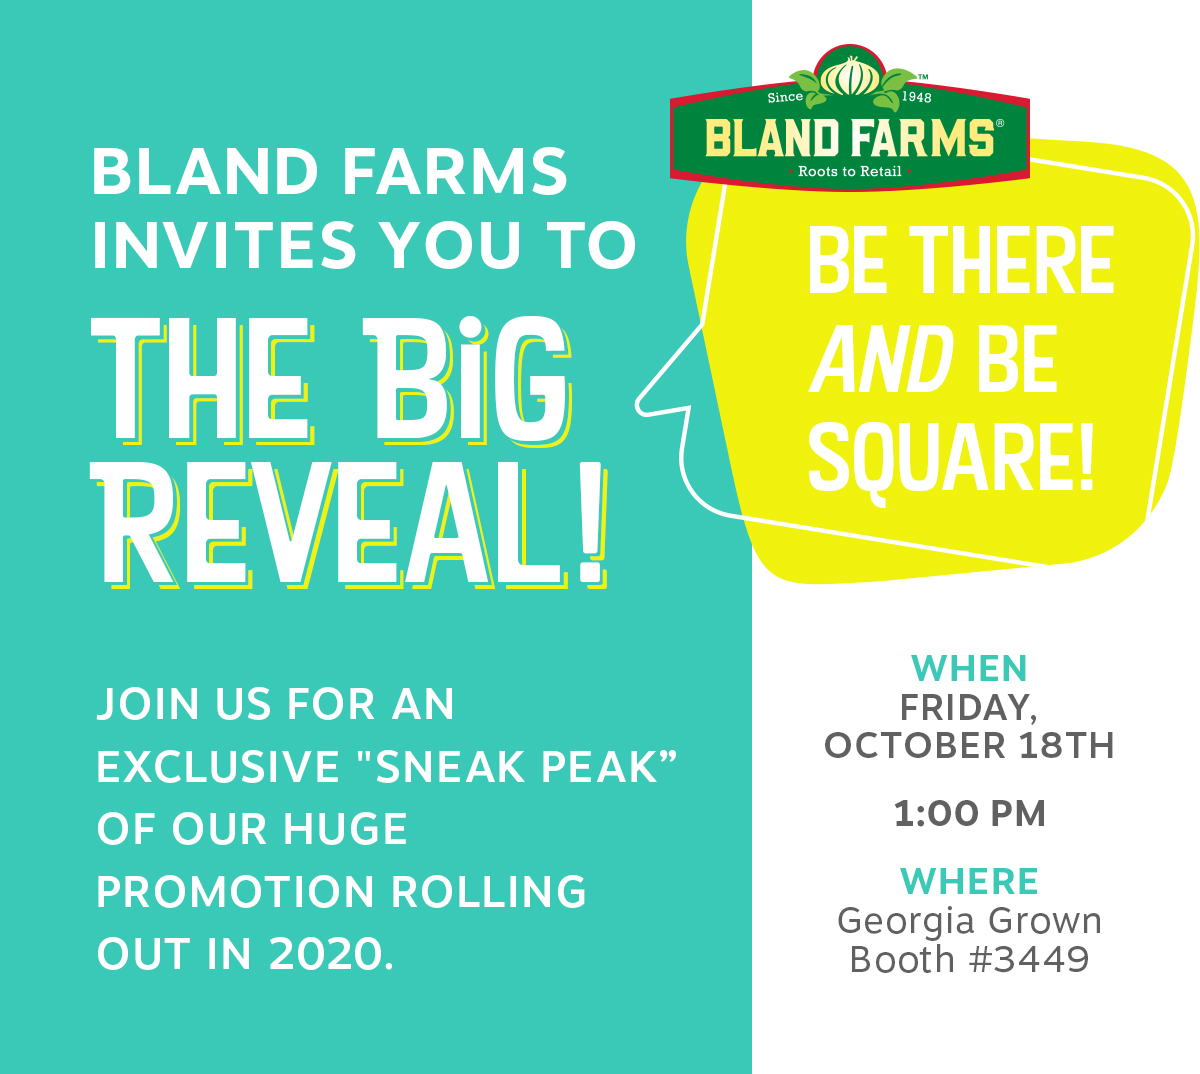 Bland Farms Invited you to the Big Reveal!